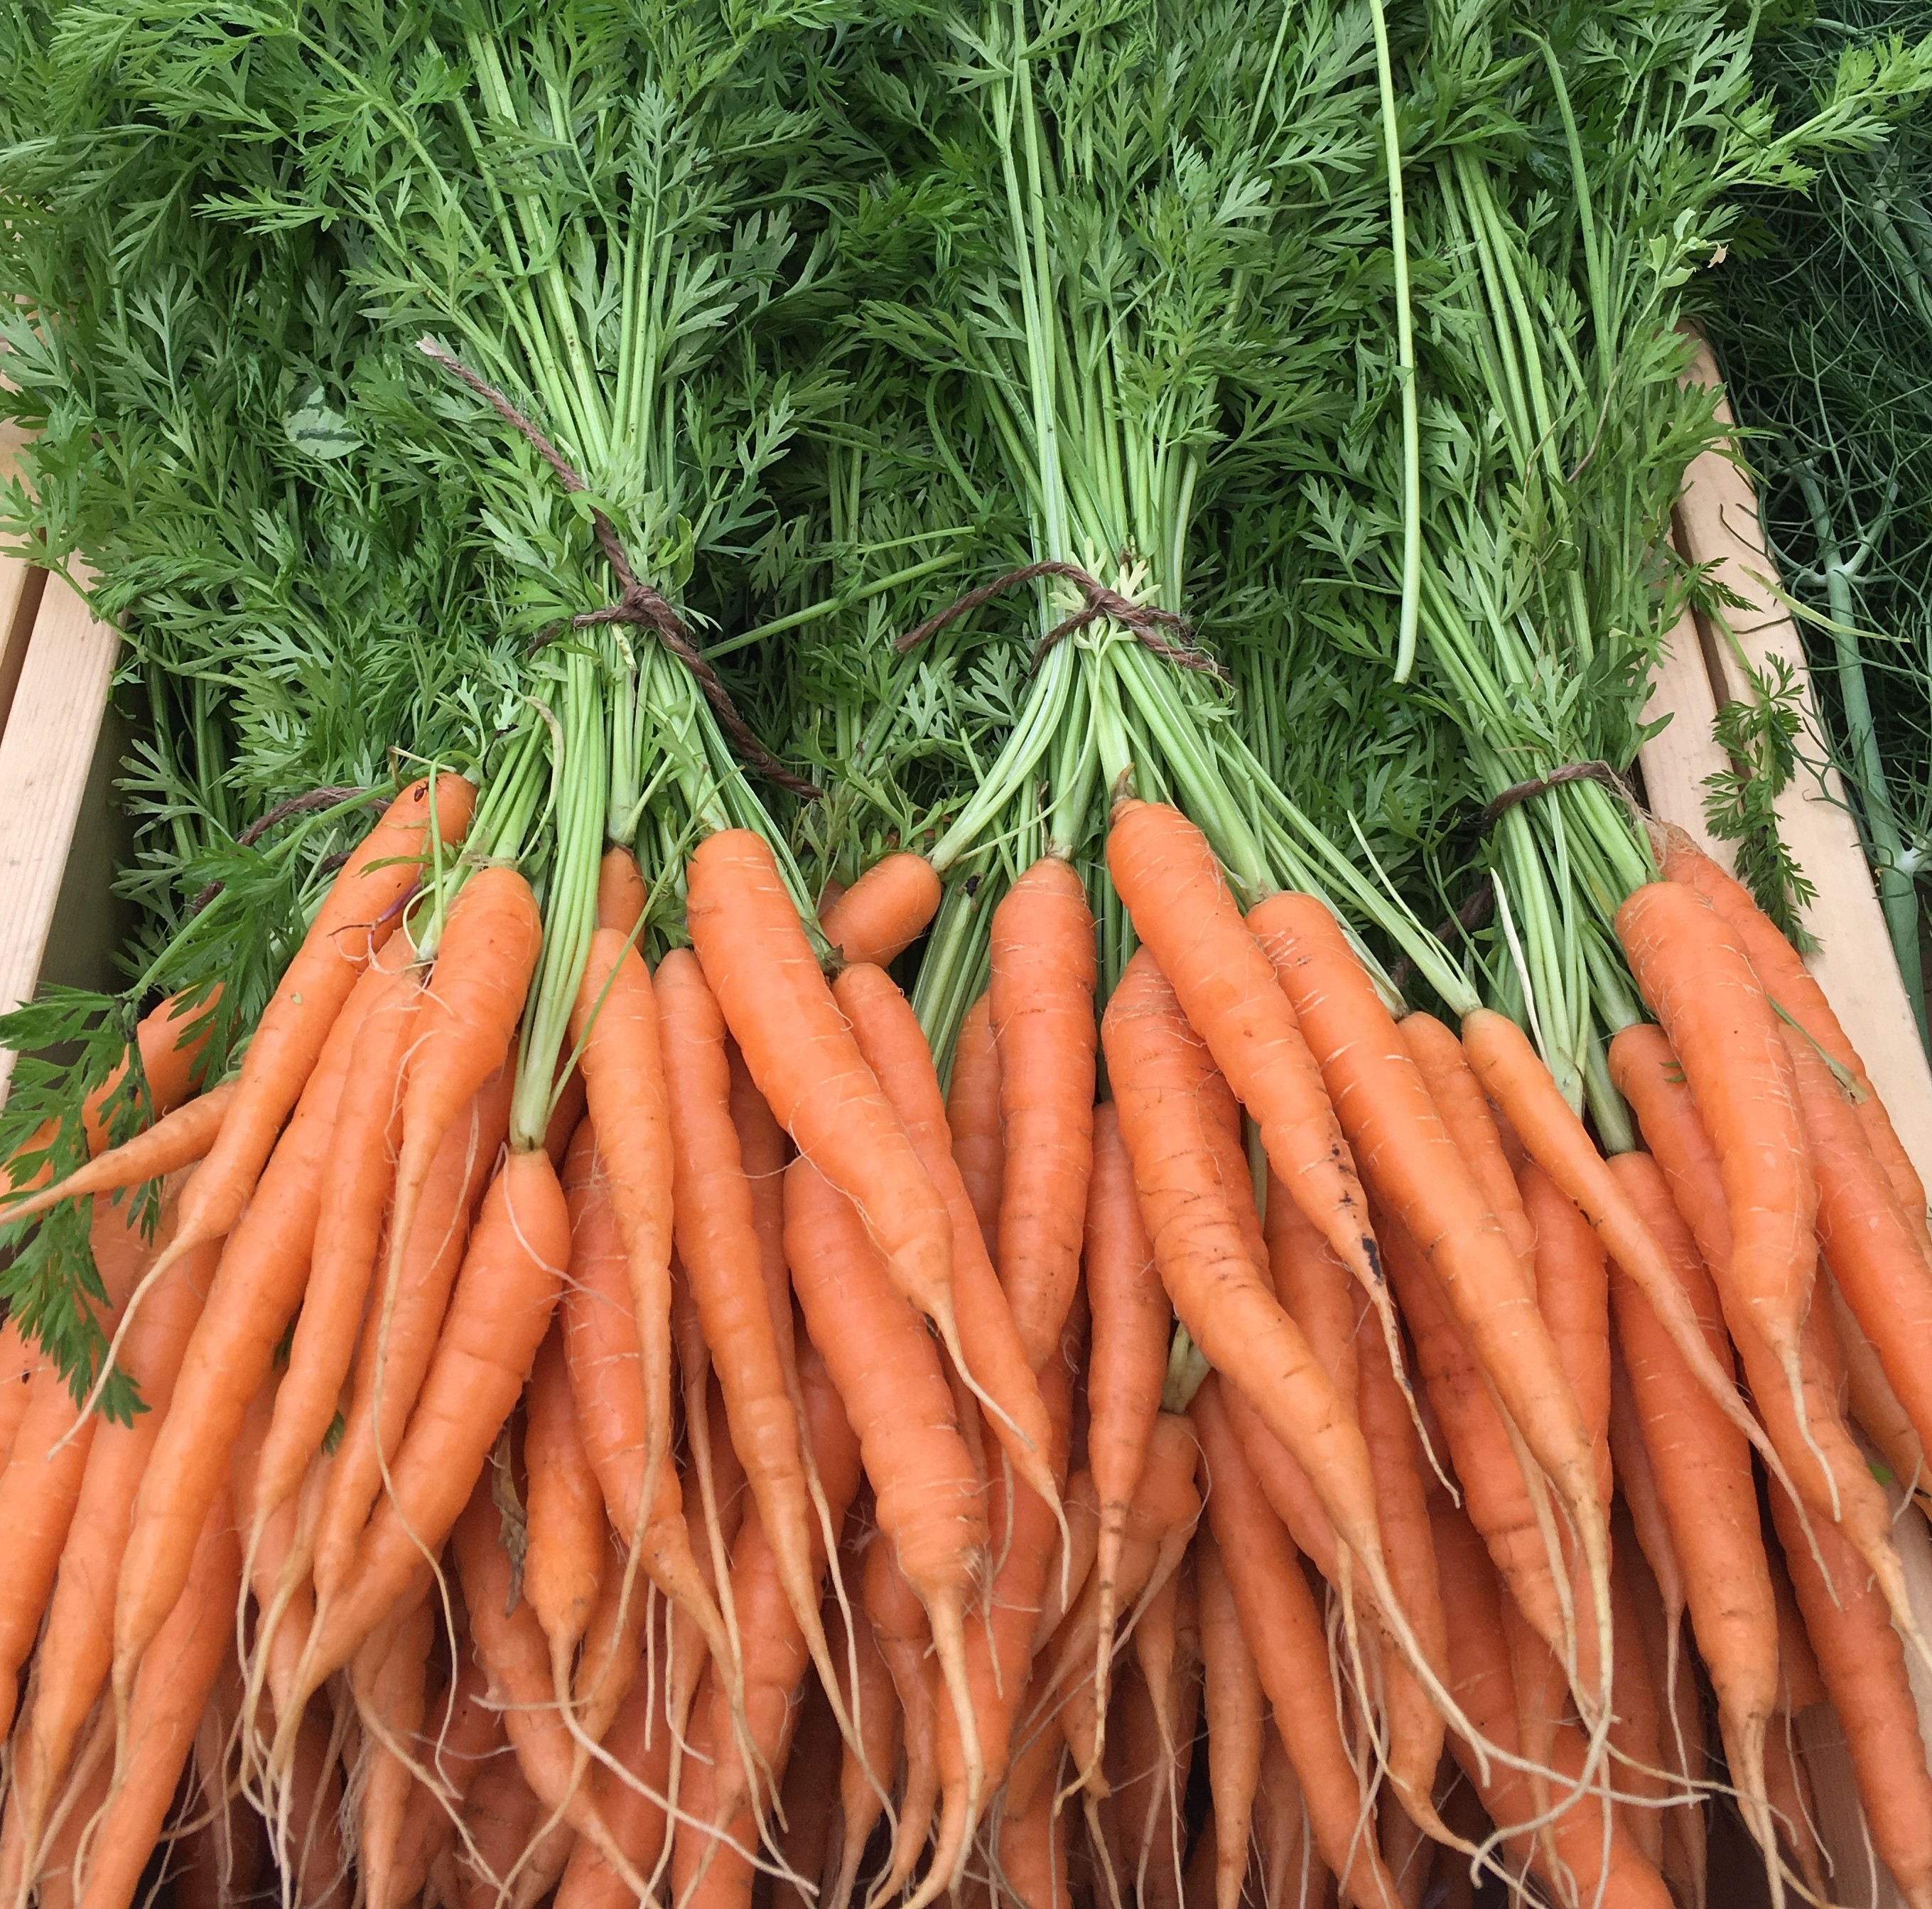 Carrots: Catalina Sweet, with tops